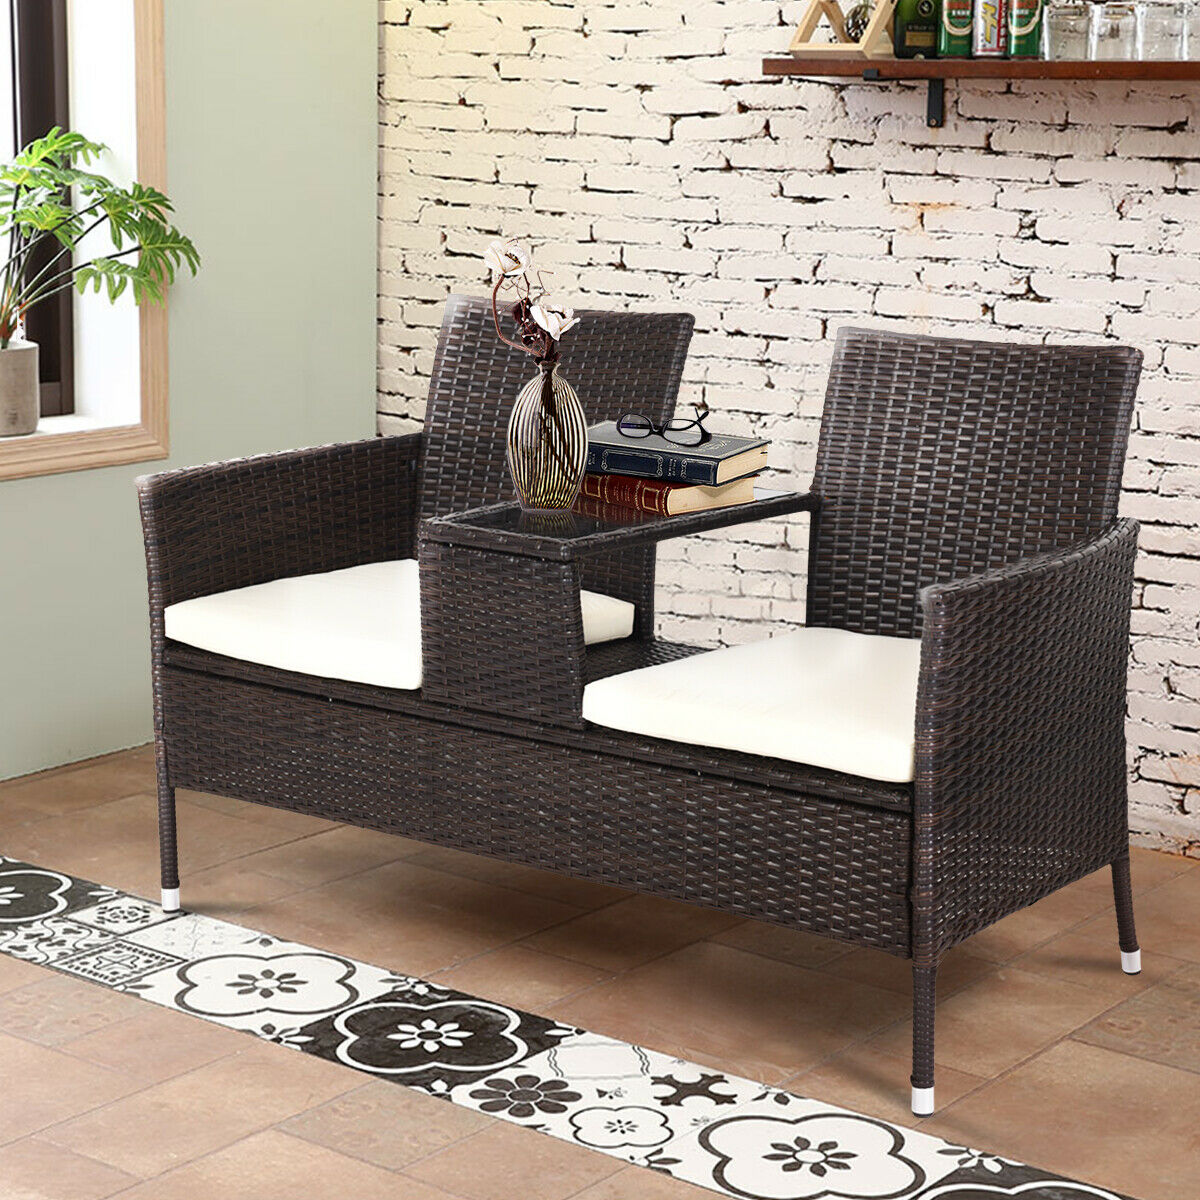 Costway Patio Rattan Chat Set Seat Sofa Loveseat Table Chairs w/ Cushion - image 2 de 9